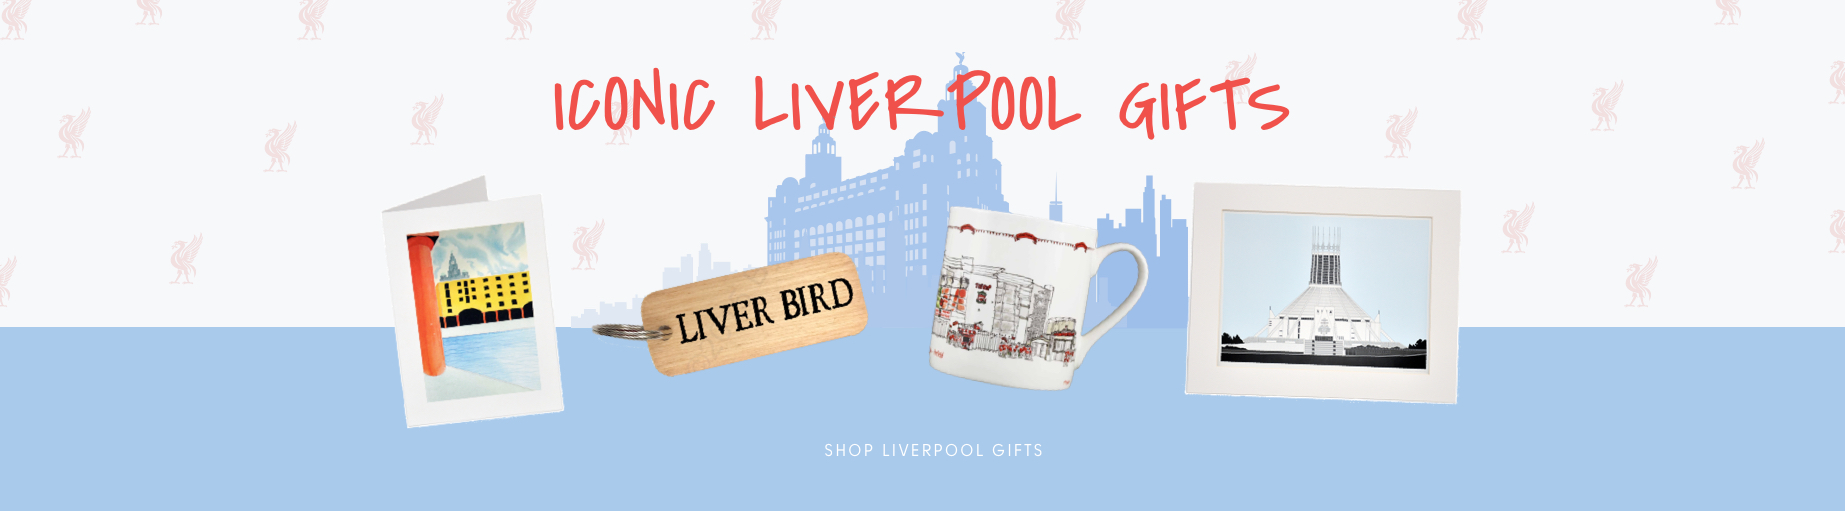 Iconic Liverpool Gifts